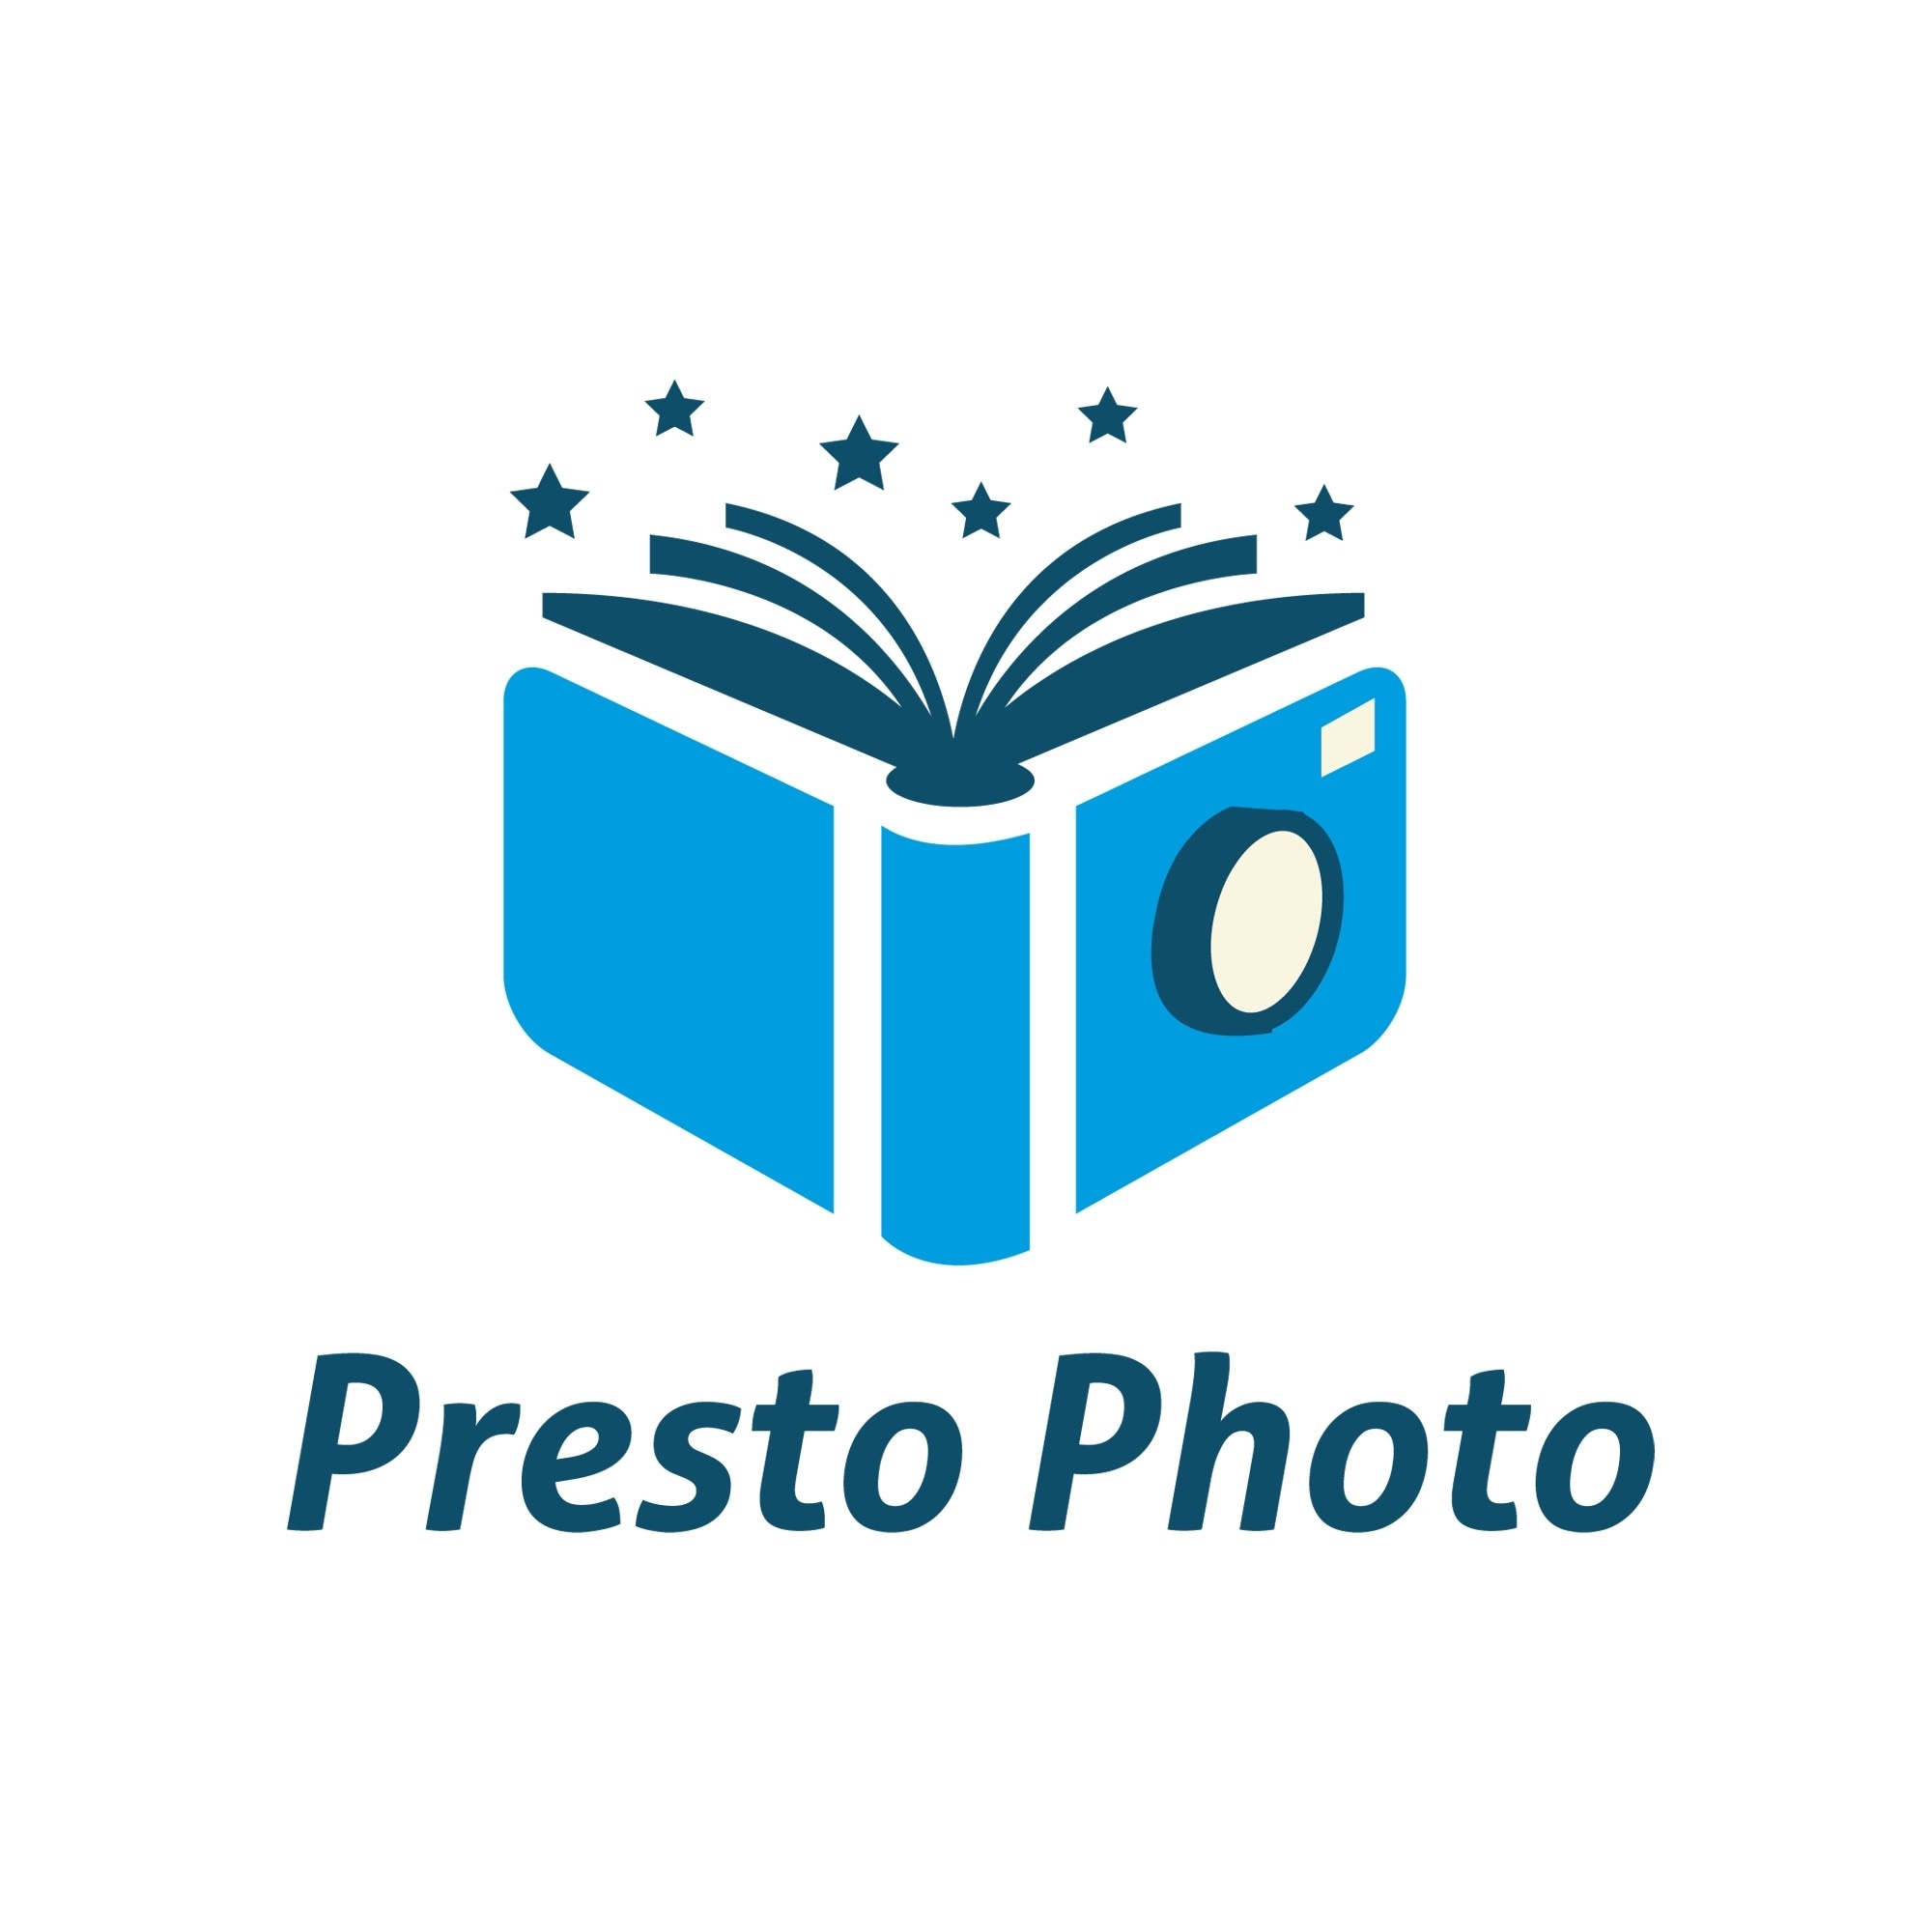 PrestoPhoto influencer marketing campaign